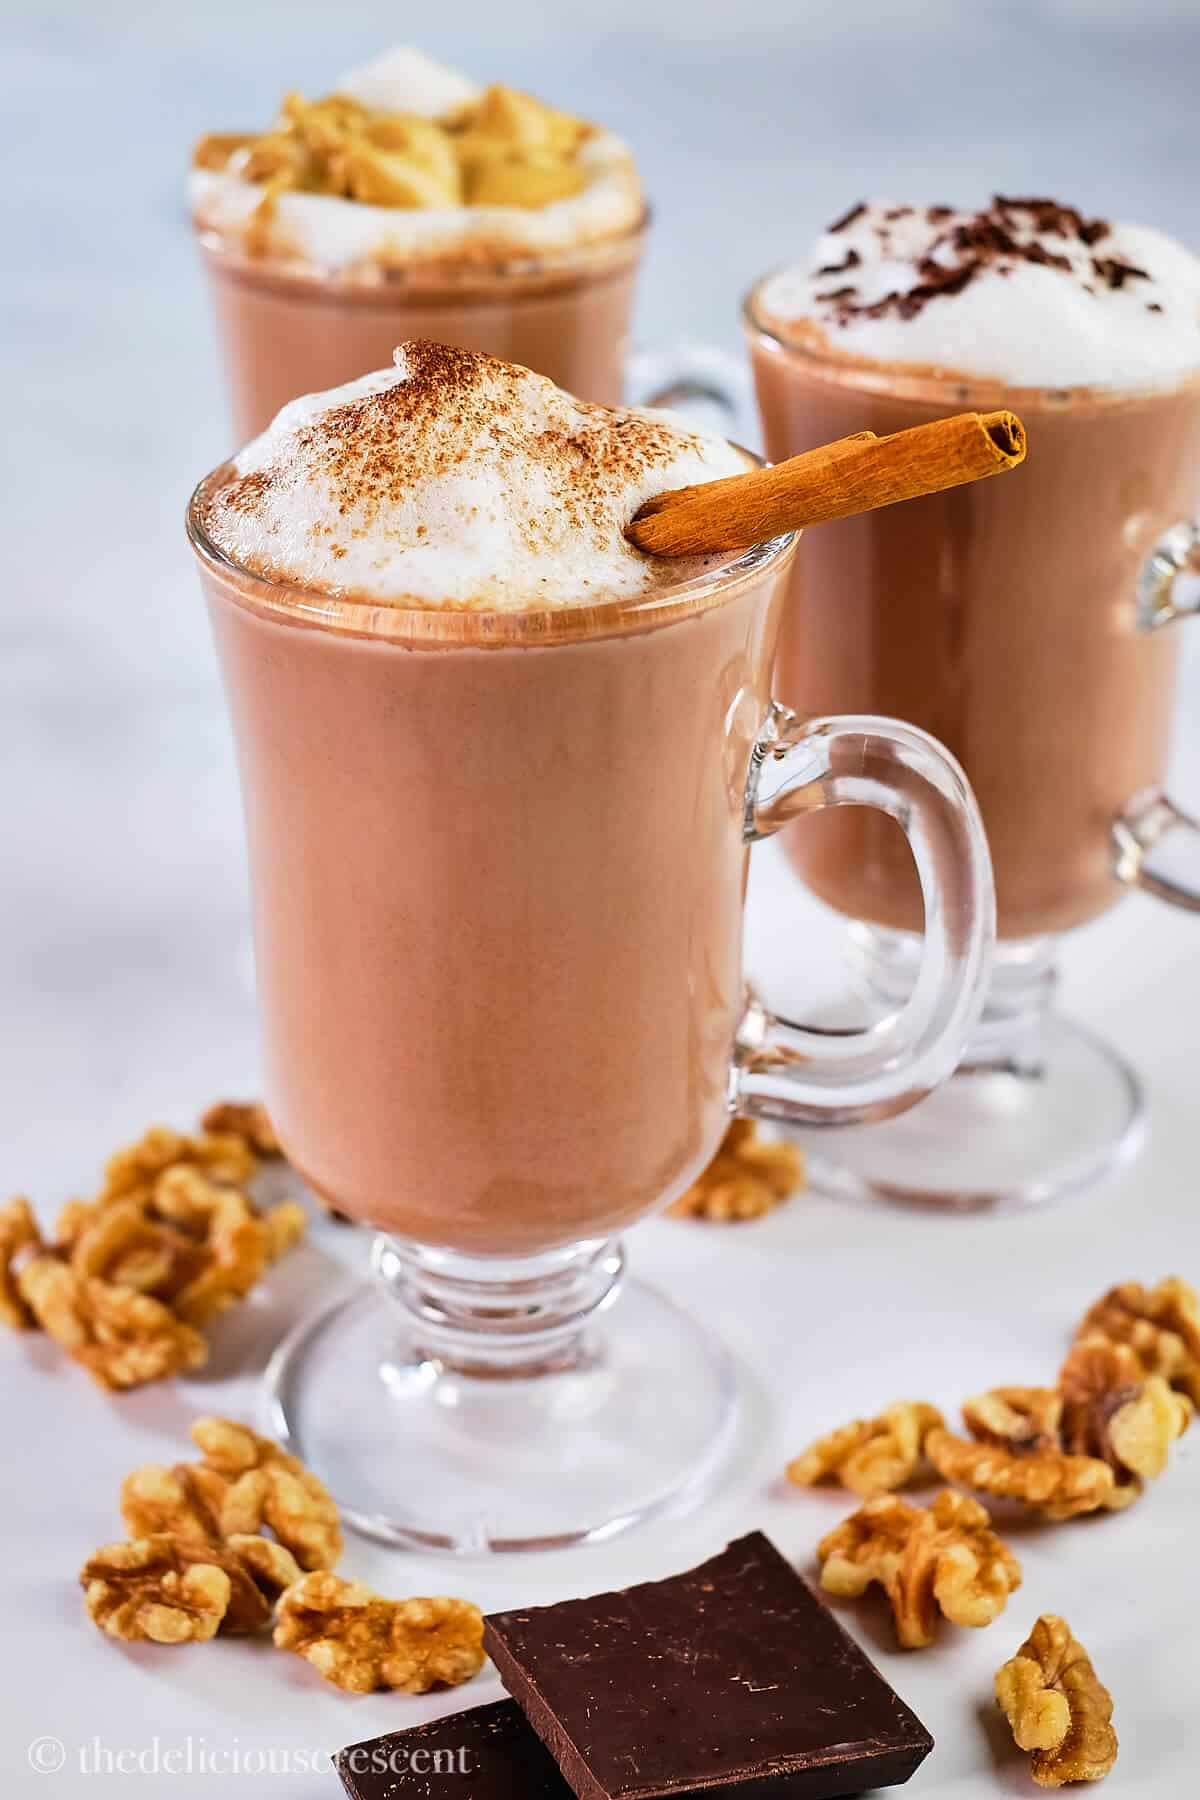 Healthy hot cocoa topped with milk foam and cinnamon stick.